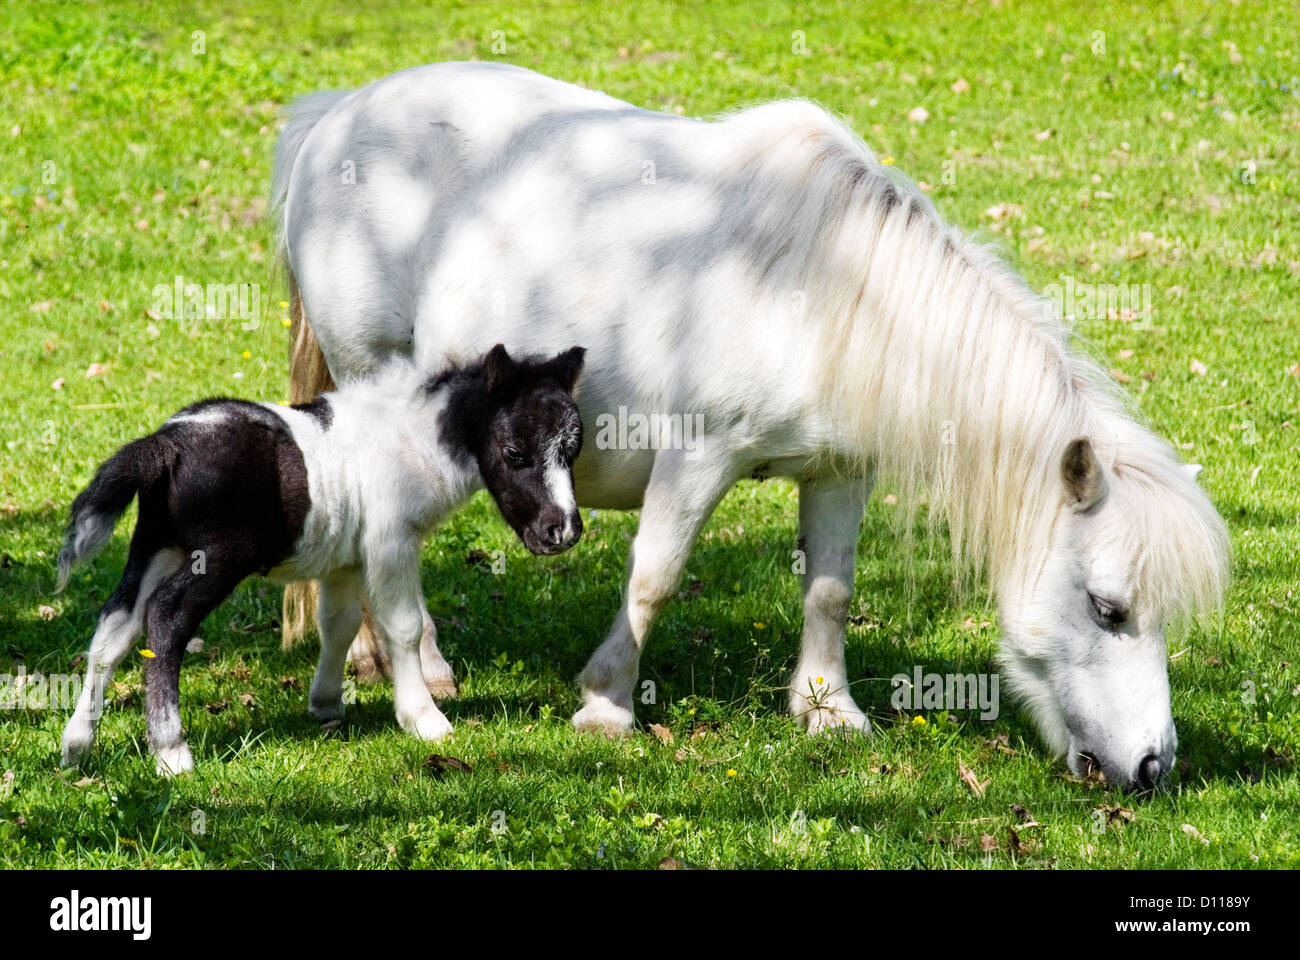 White Miniature horse mare and foal standing on meadow   Miniaturpferd-Stute und Fohlen - Stock Image